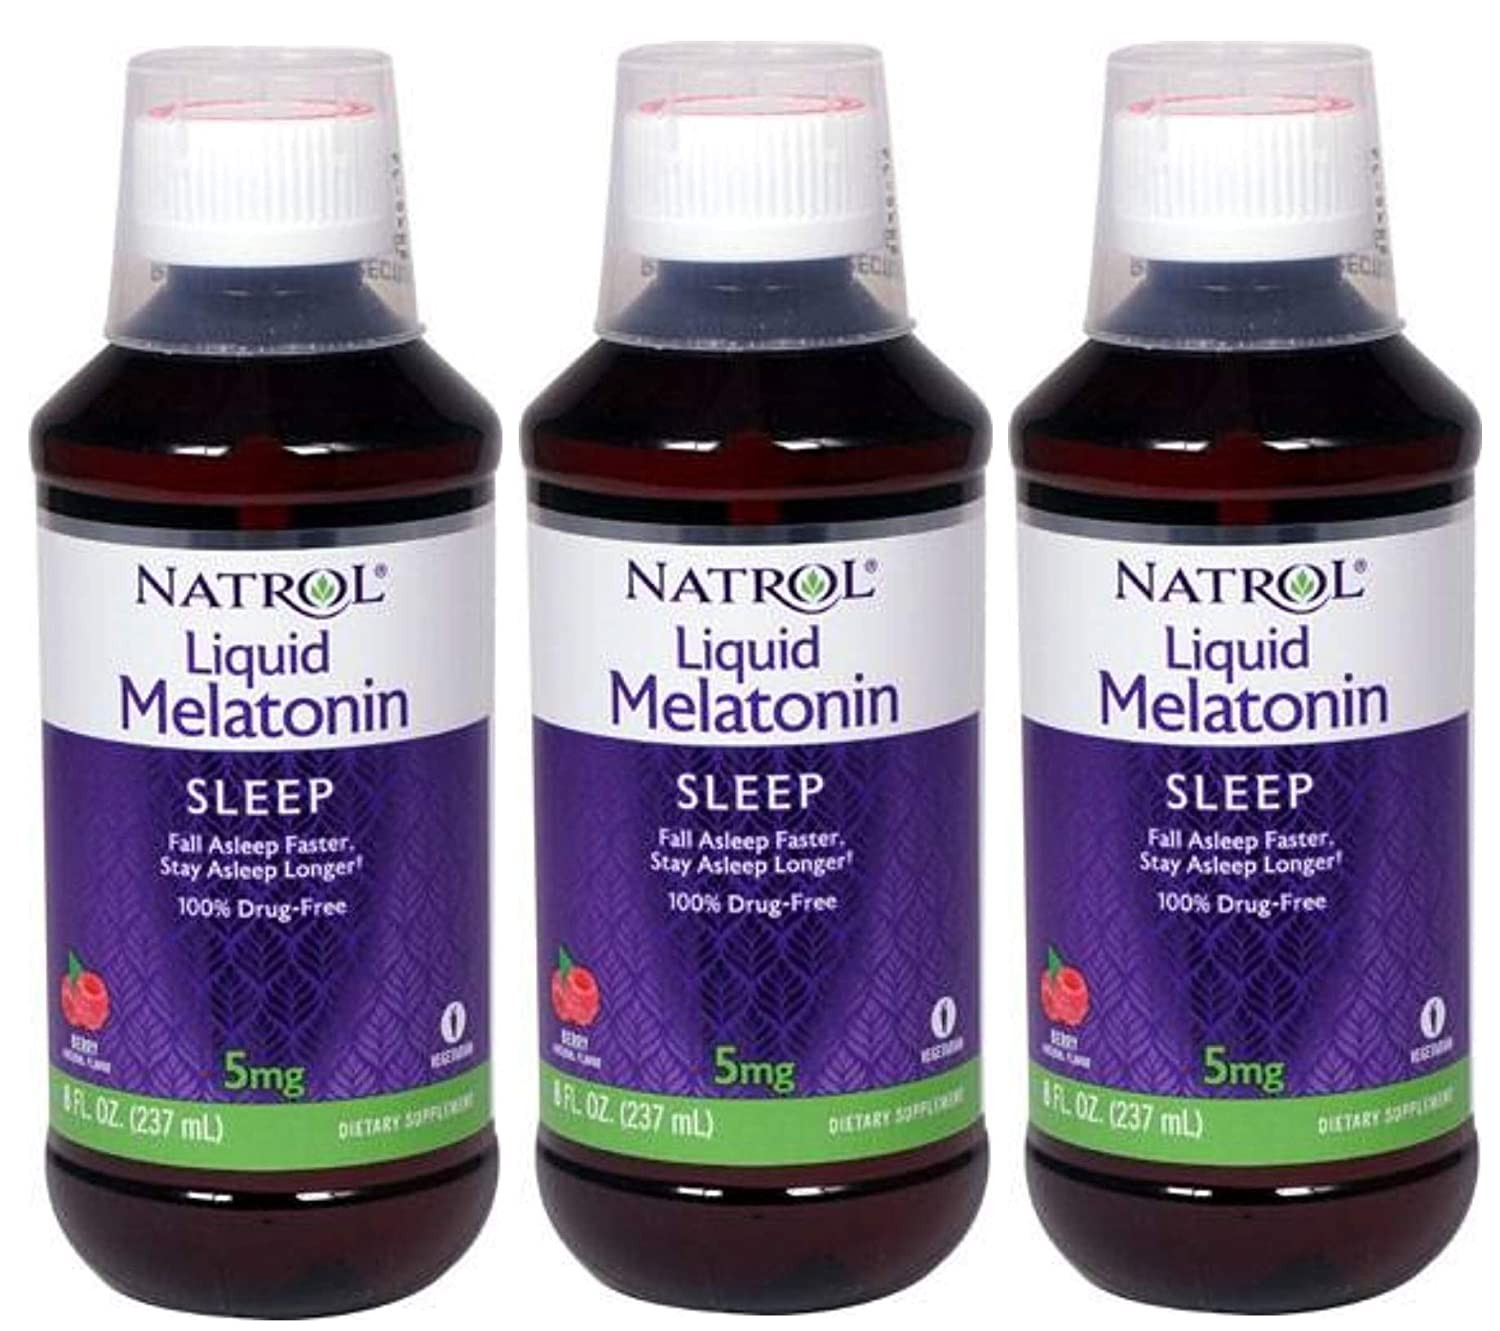 Amazon.com: Natrol Melatonin Sleep Liquid, 5 Mg, 8 Fluid Ounce (3 Pack): Health & Personal Care